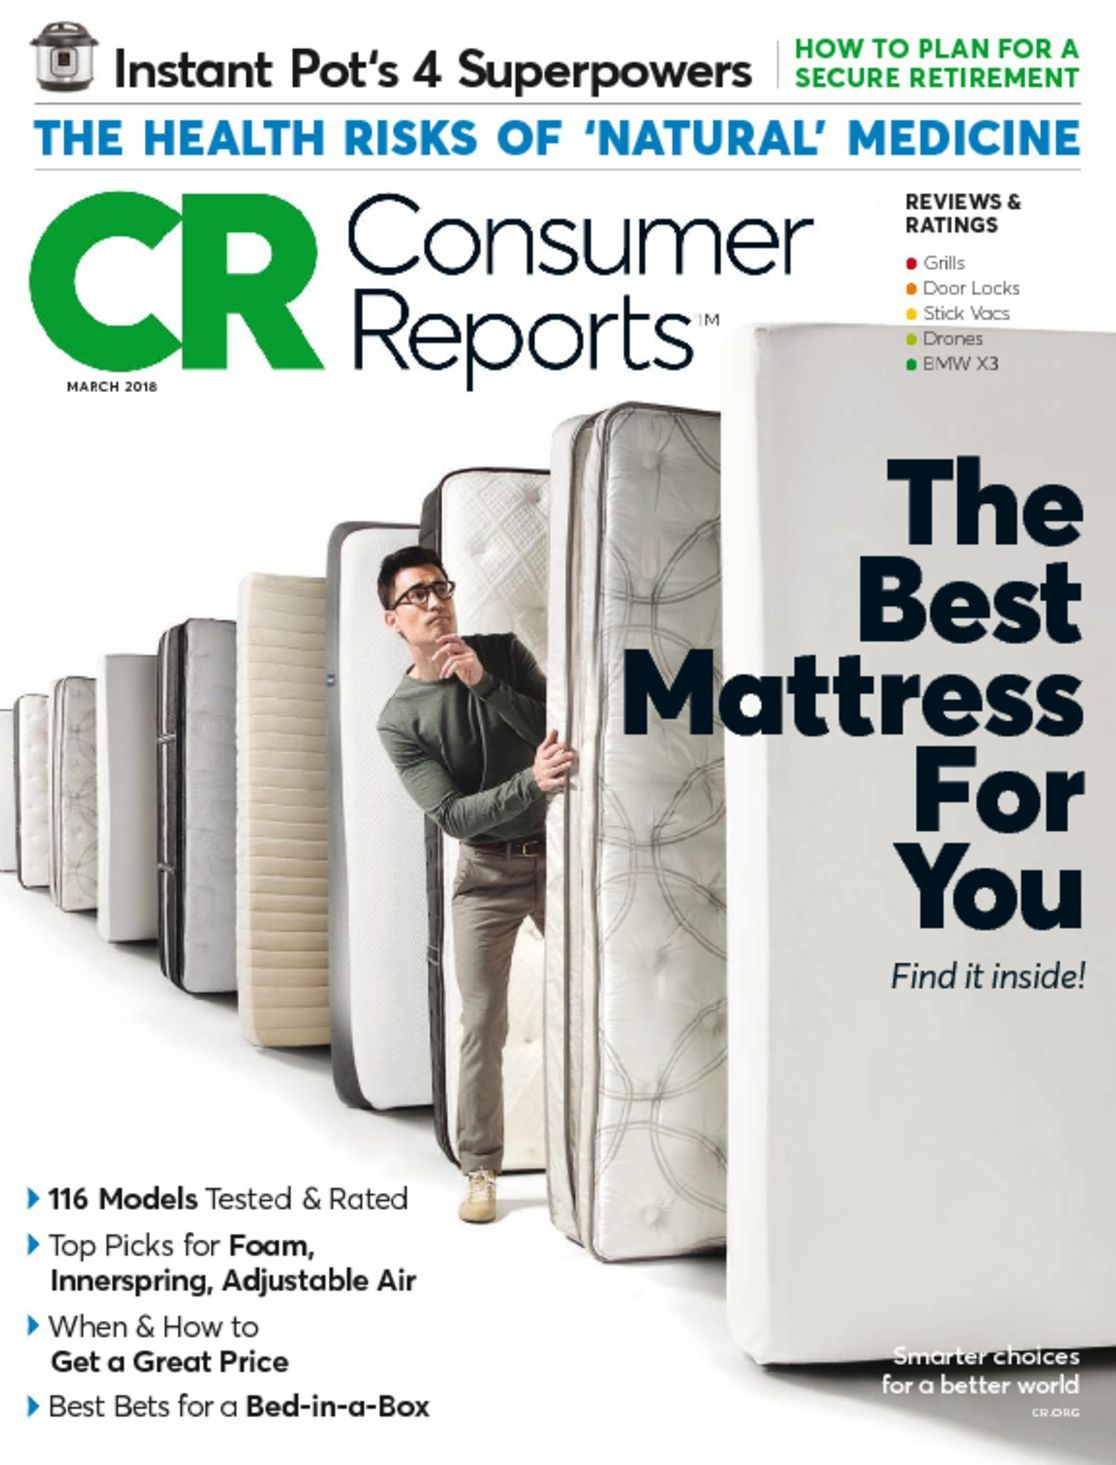 Consumer reports coupon code 2018